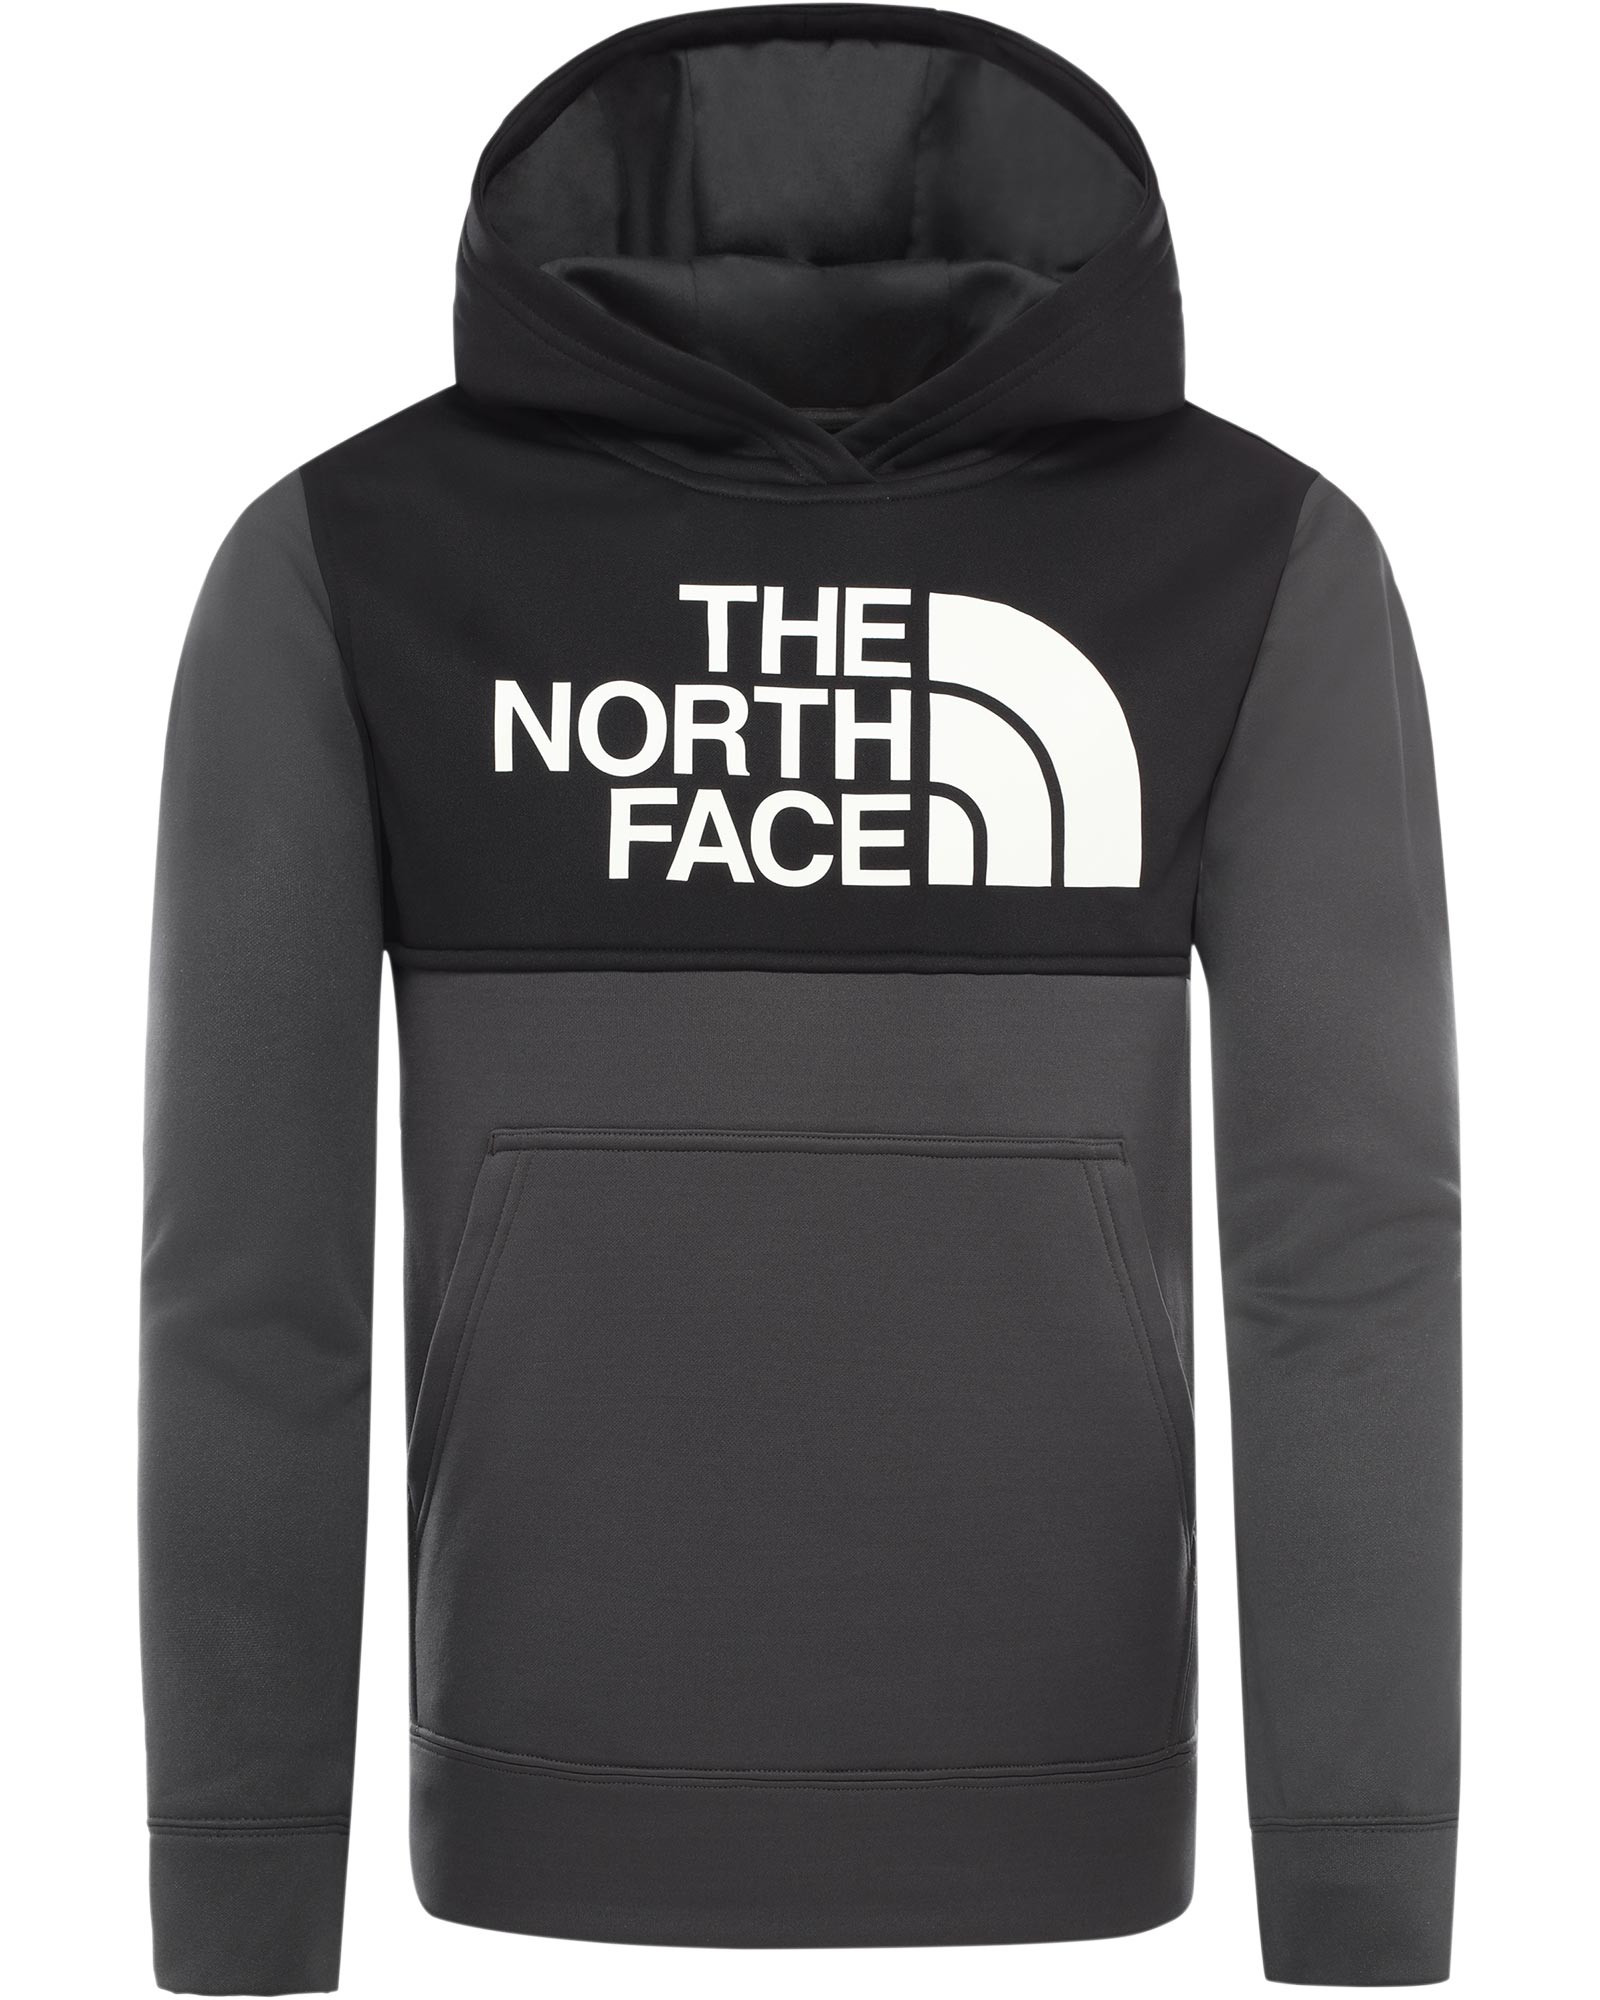 The North Face Boys' Surgent Pullover Block Hoodie 0